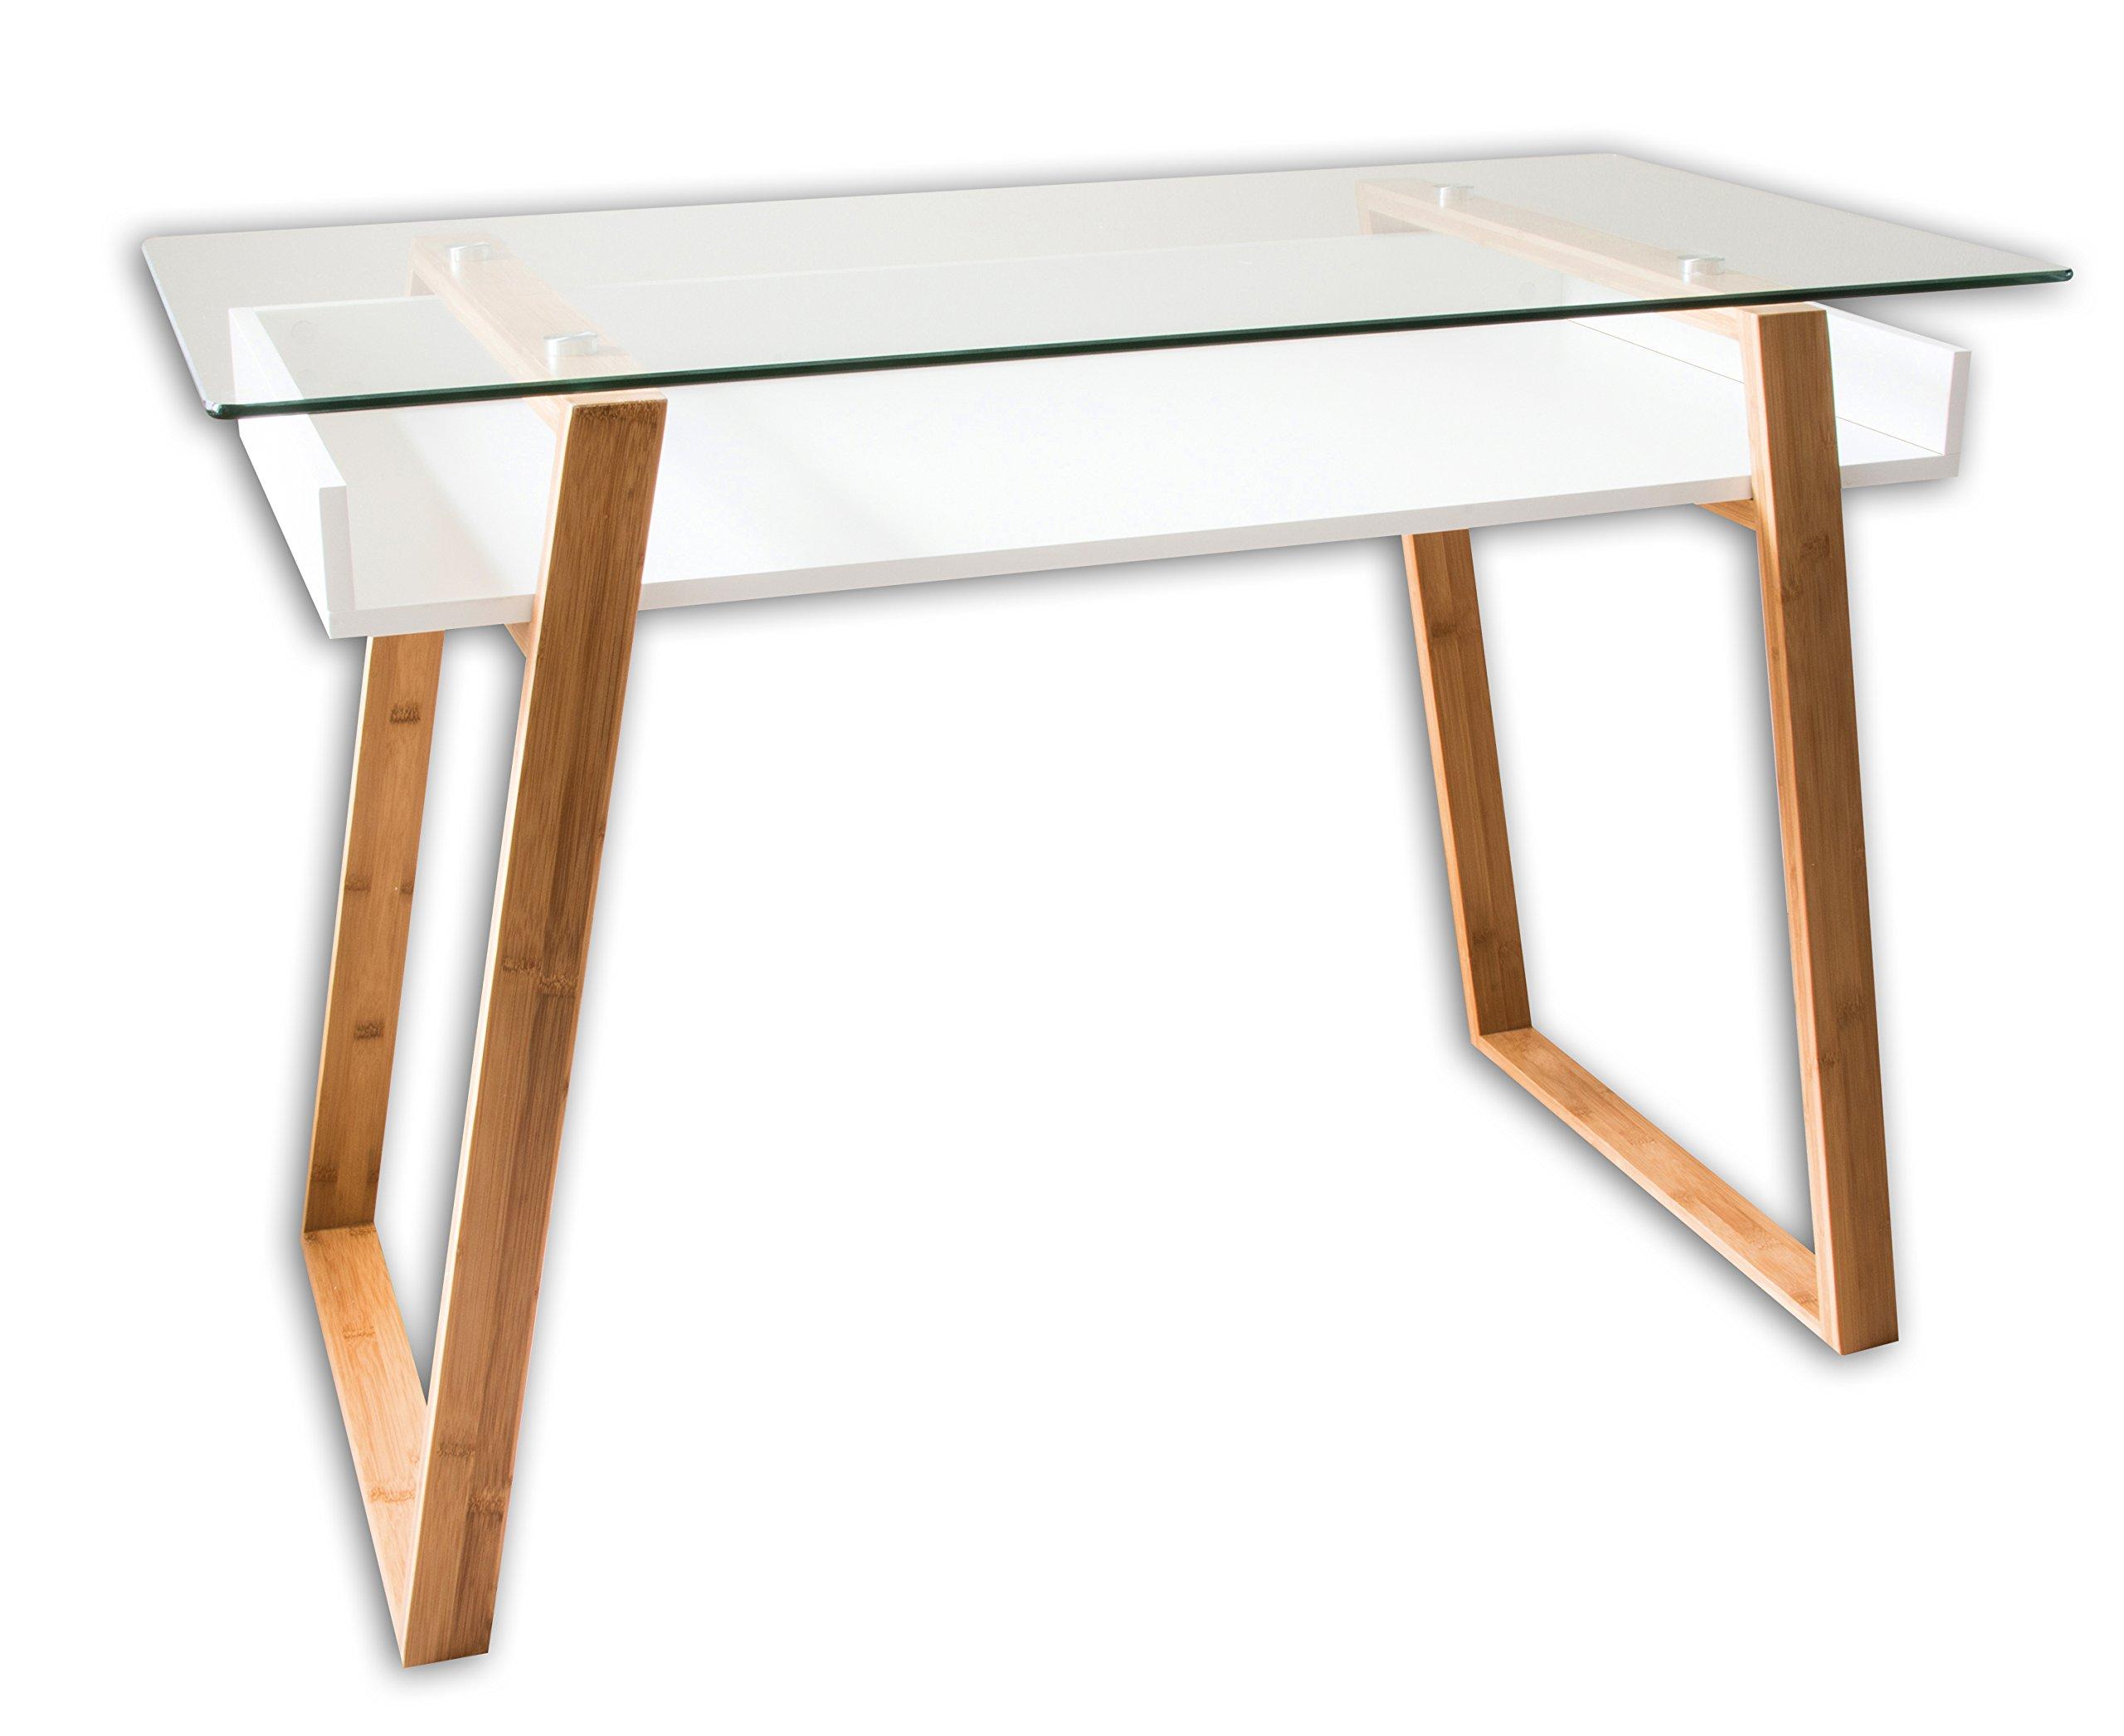 bonVIVO Writing Desk Massimo, Contemporary Desk Combining Glass and Wood, Modern Desk with Bamboo Legs and White Glazed Shelf, Usable As Computer Desk, Office Desk, Secretary Desk Or Vanity Desk by bonVIVO